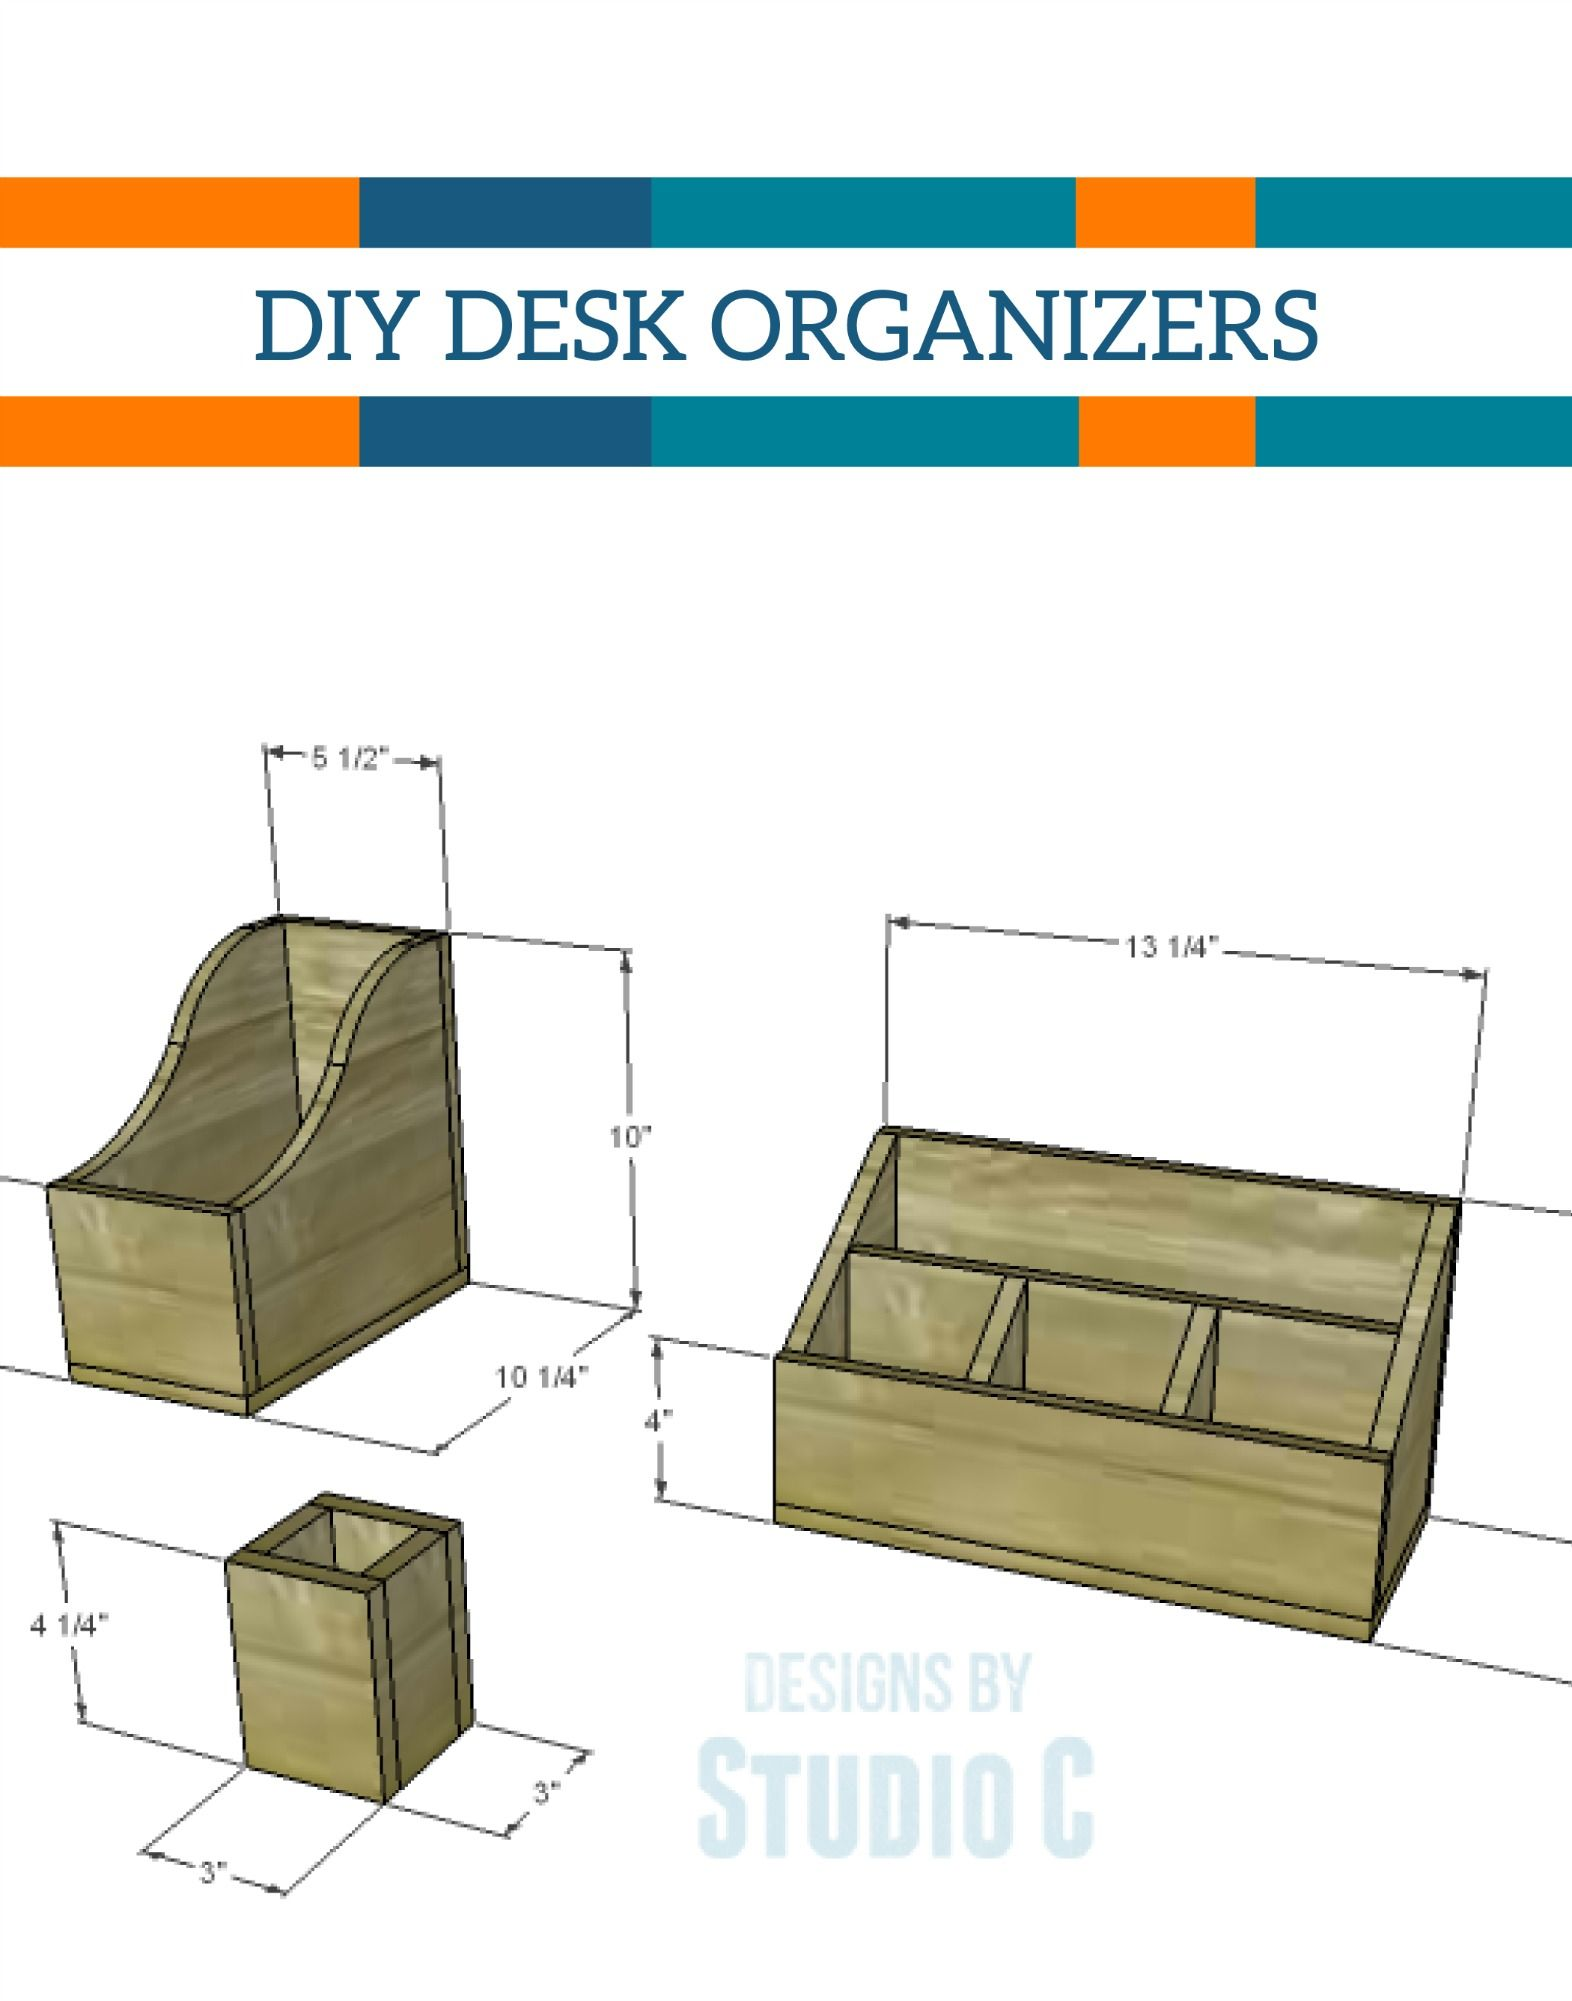 Make Your Own Wooden Desk Organizers For Your Office With This Wonderful Tutorial It S A Great Wee Desk Organization Diy Wooden Desk Organizer Desk Organizers